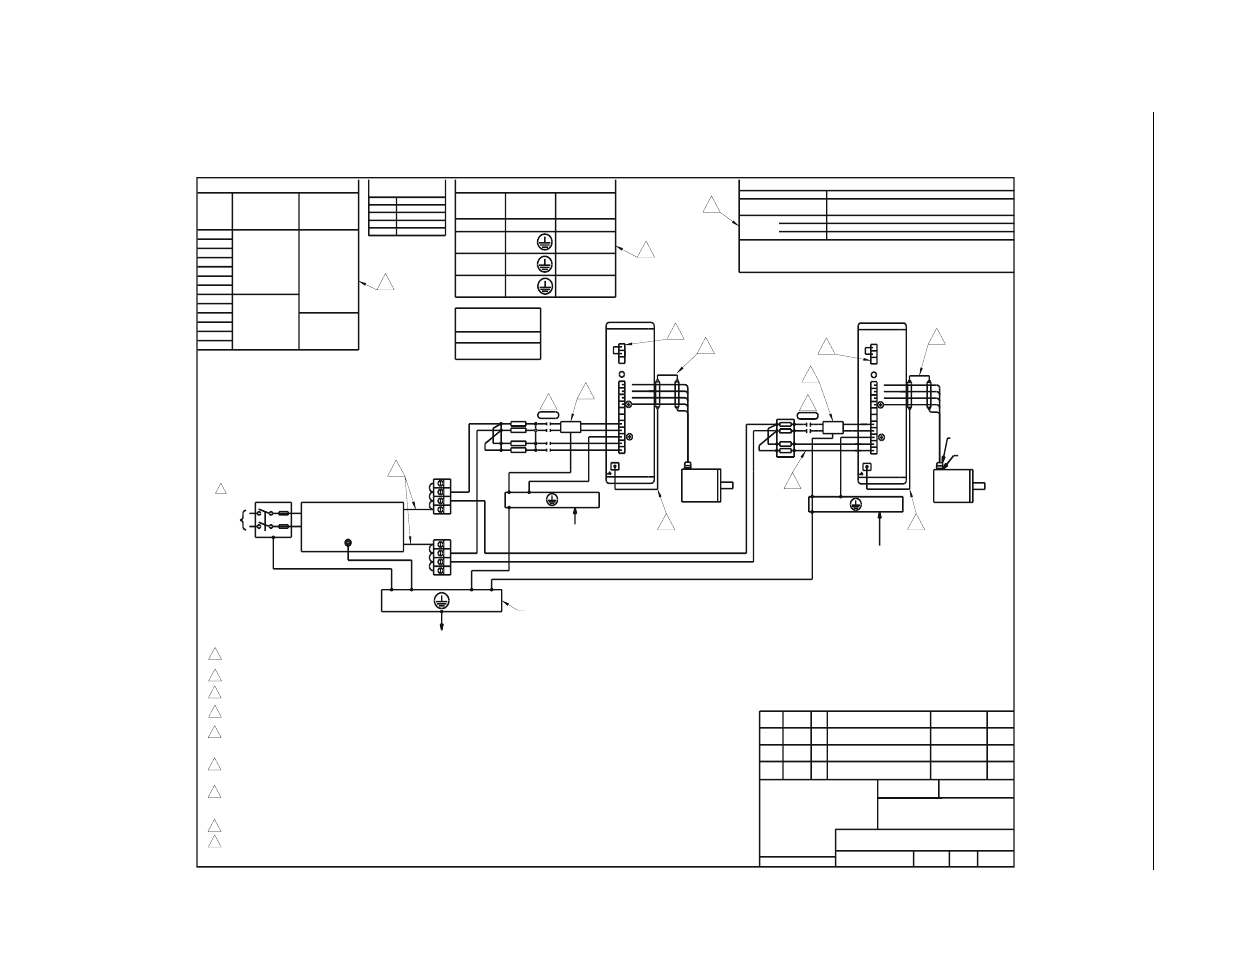 hight resolution of power wiring diagram figure 5 4 figure 5 4 power wiring diagrams sheet 1 of